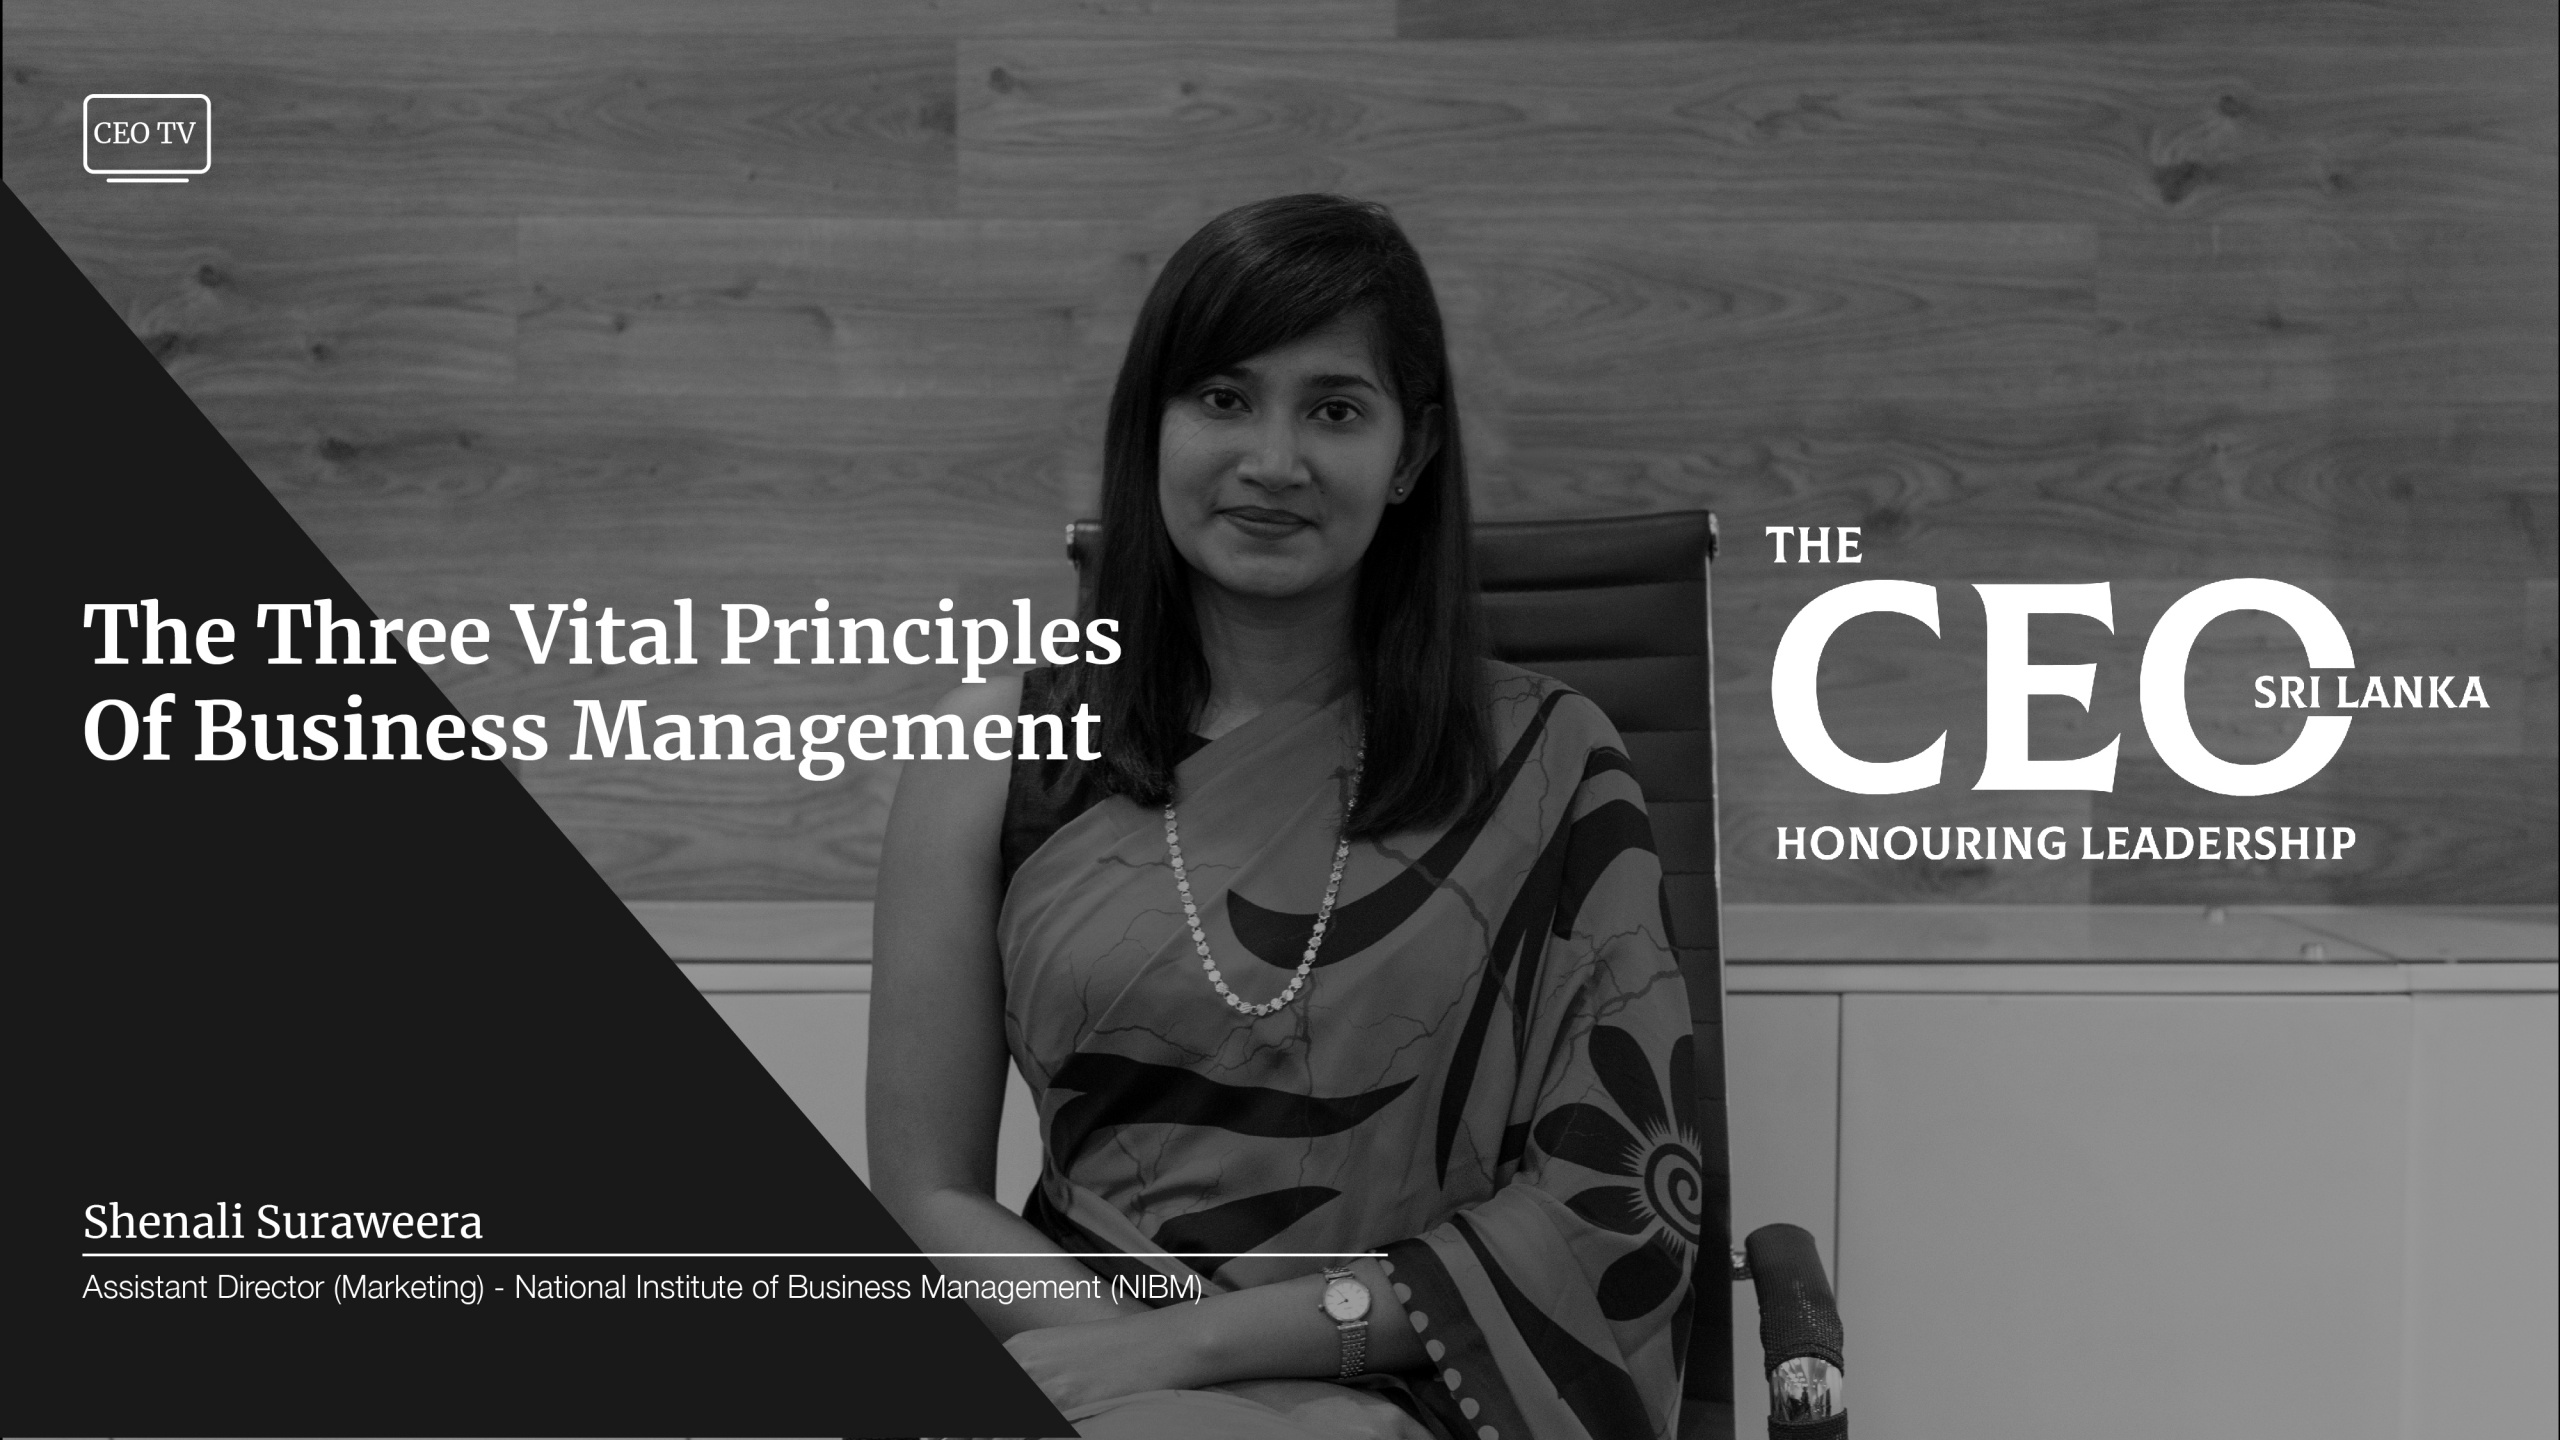 An Interview with Ms. Shenali Suraweera, the Assistant Director – Marketing of NIBM